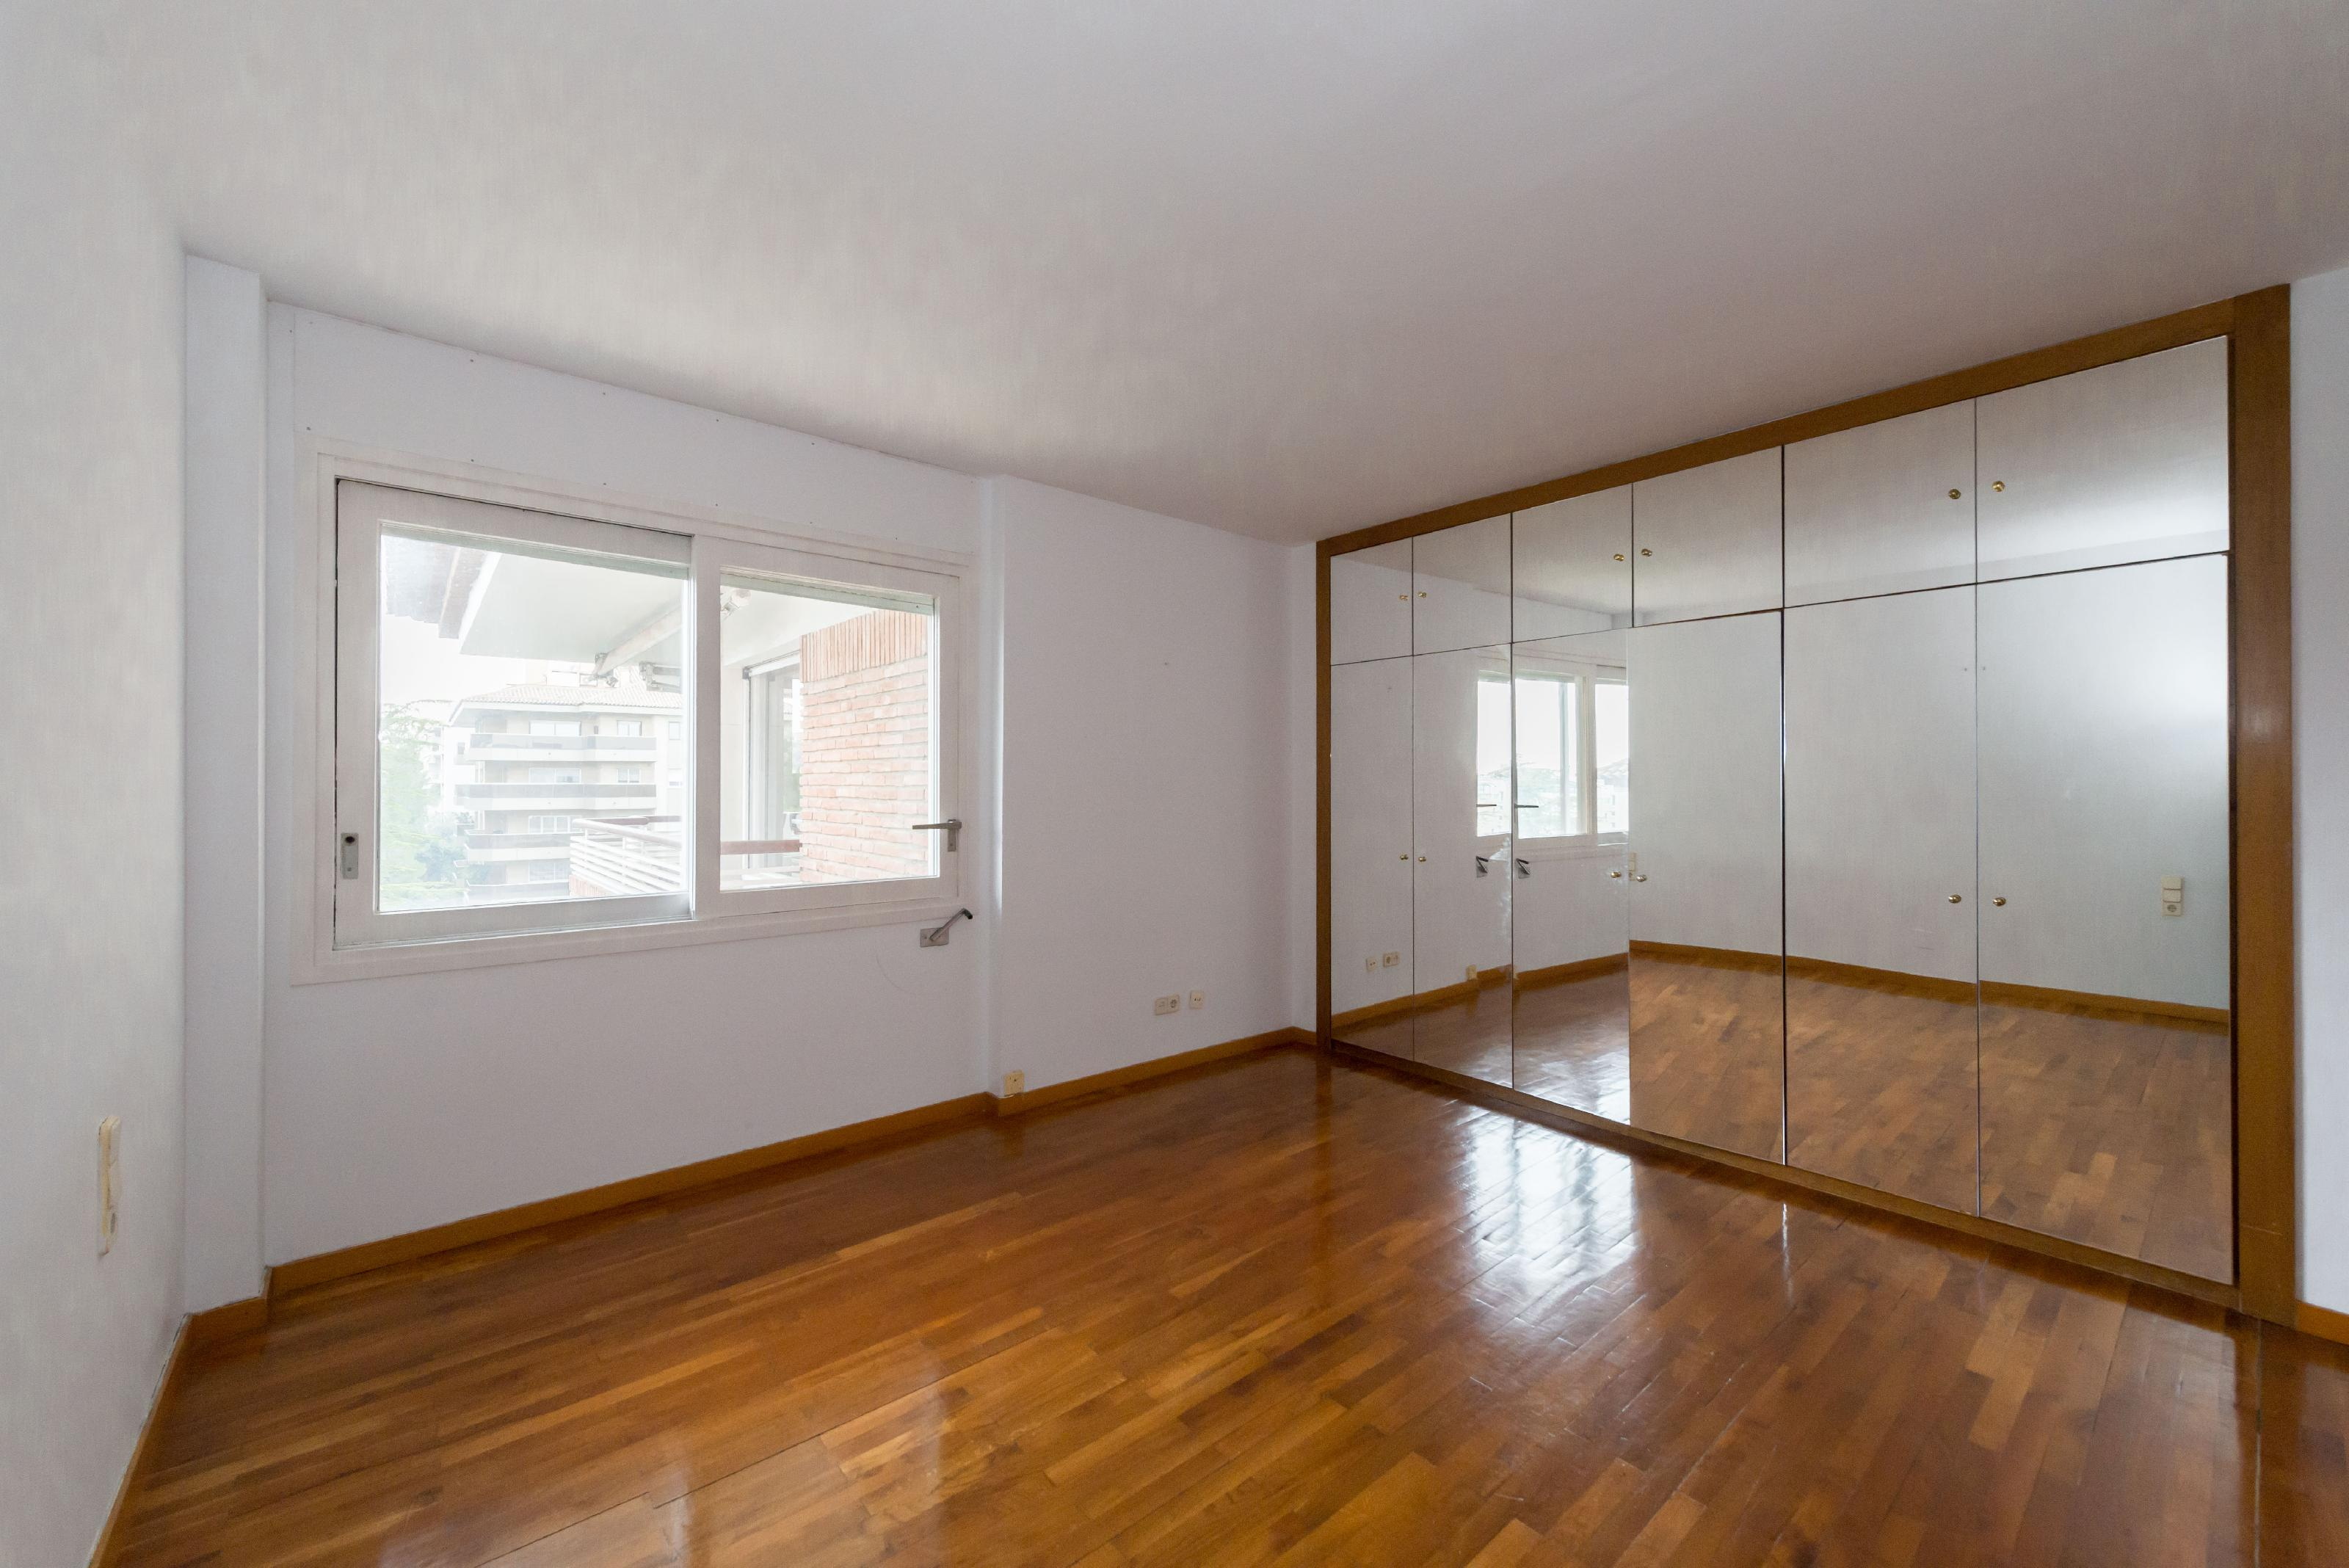 245495 Penthouse for sale in Les Corts, Pedralbes 15